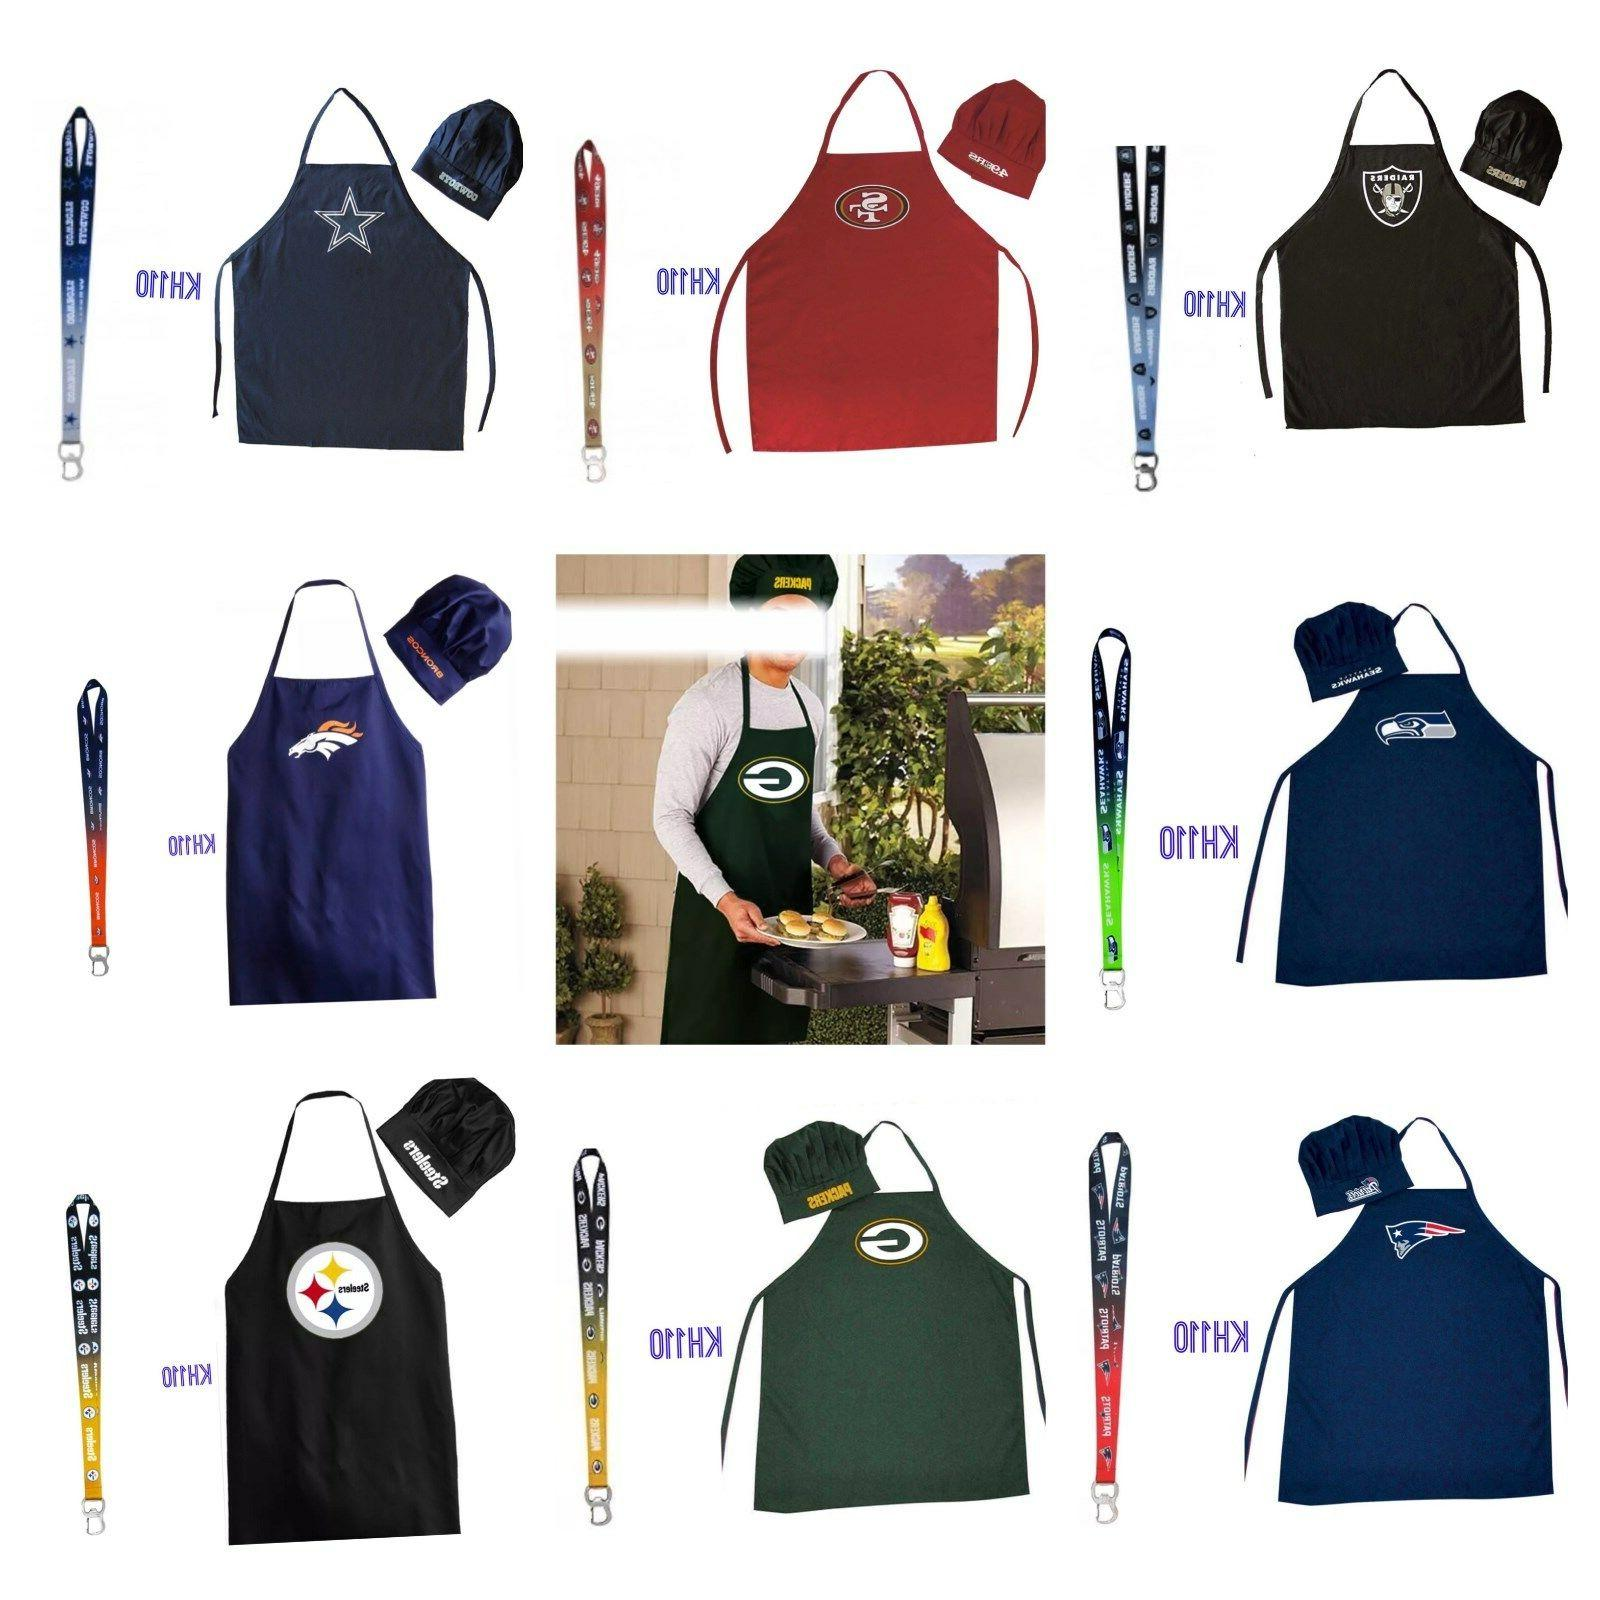 nfl team chef hat and apron bottle